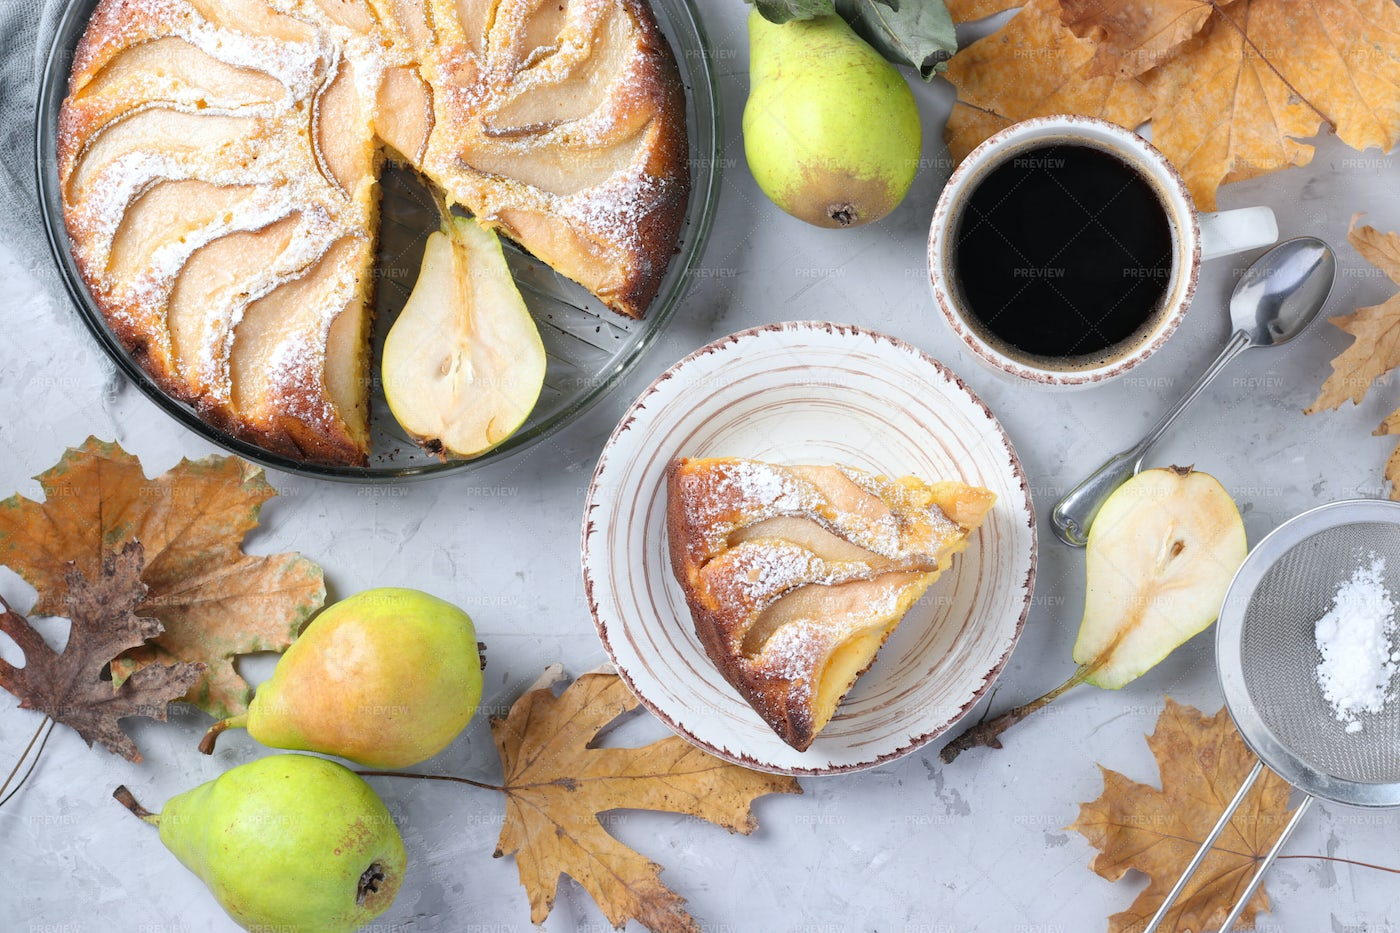 Homemade Pie With Pears: Stock Photos